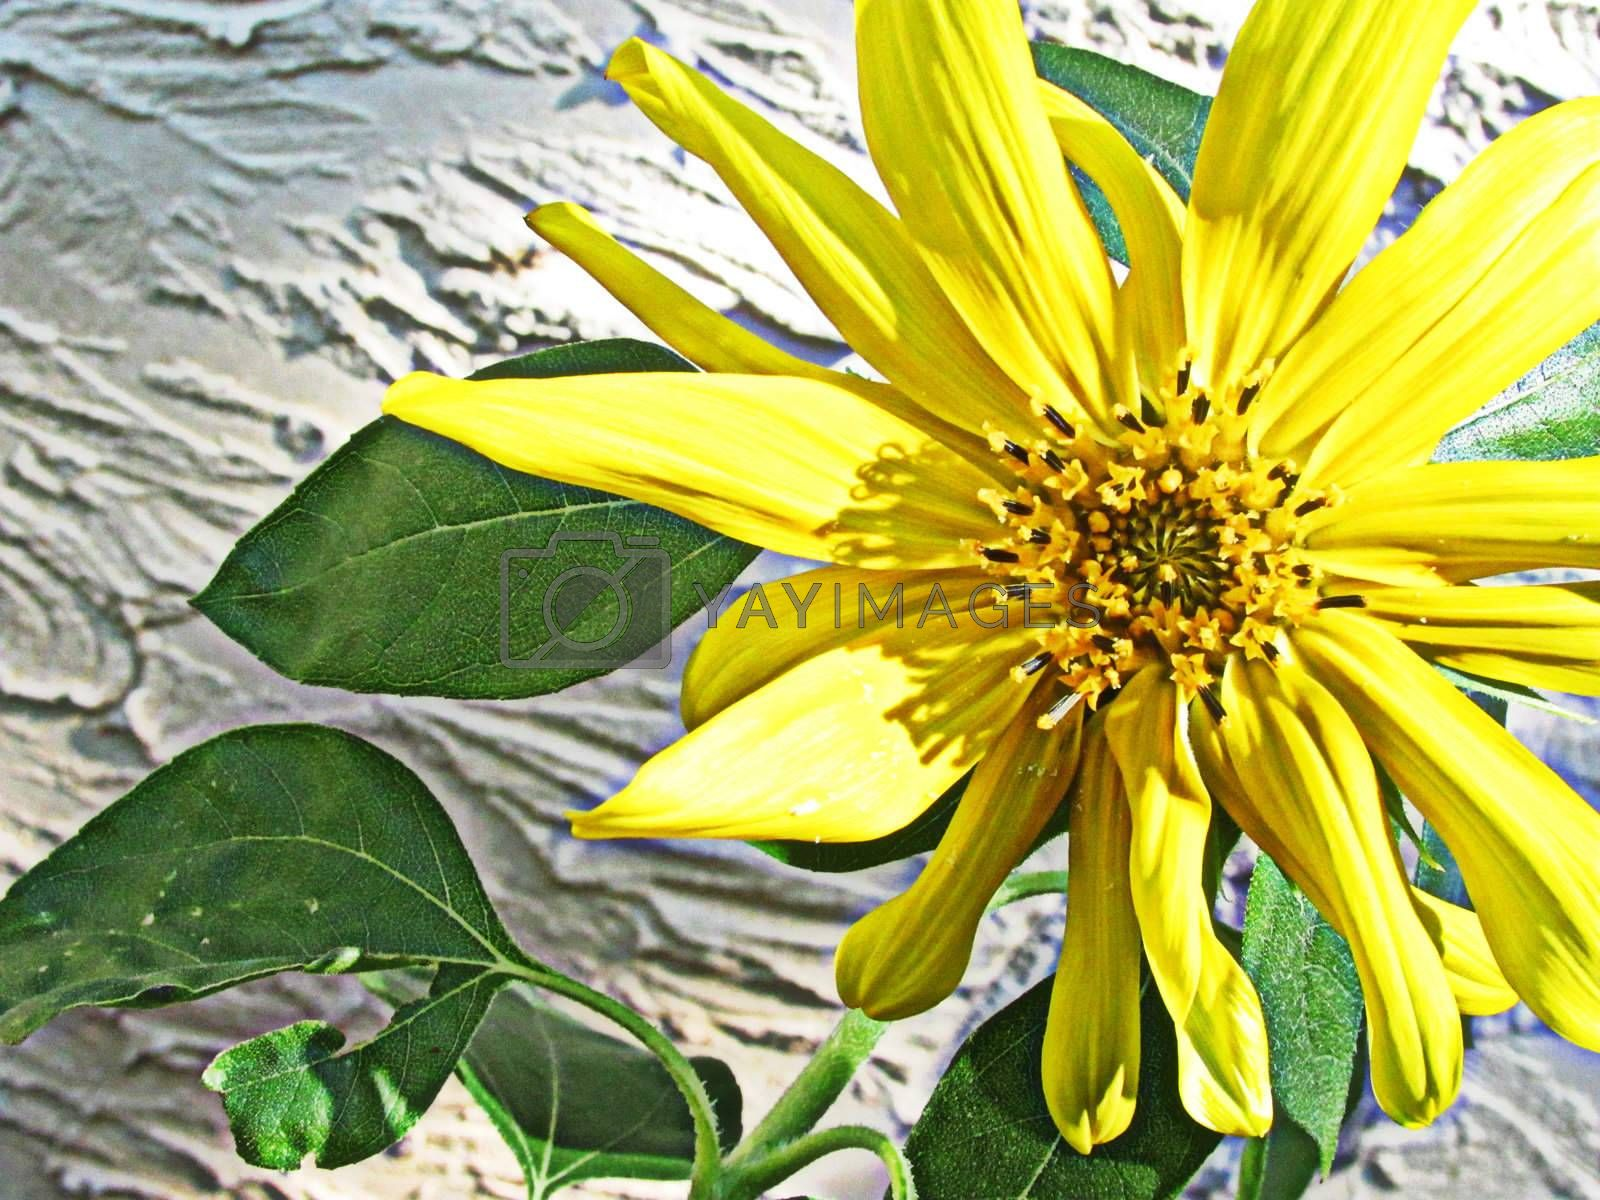 Royalty free image of Immature Sunflower by cccaity63